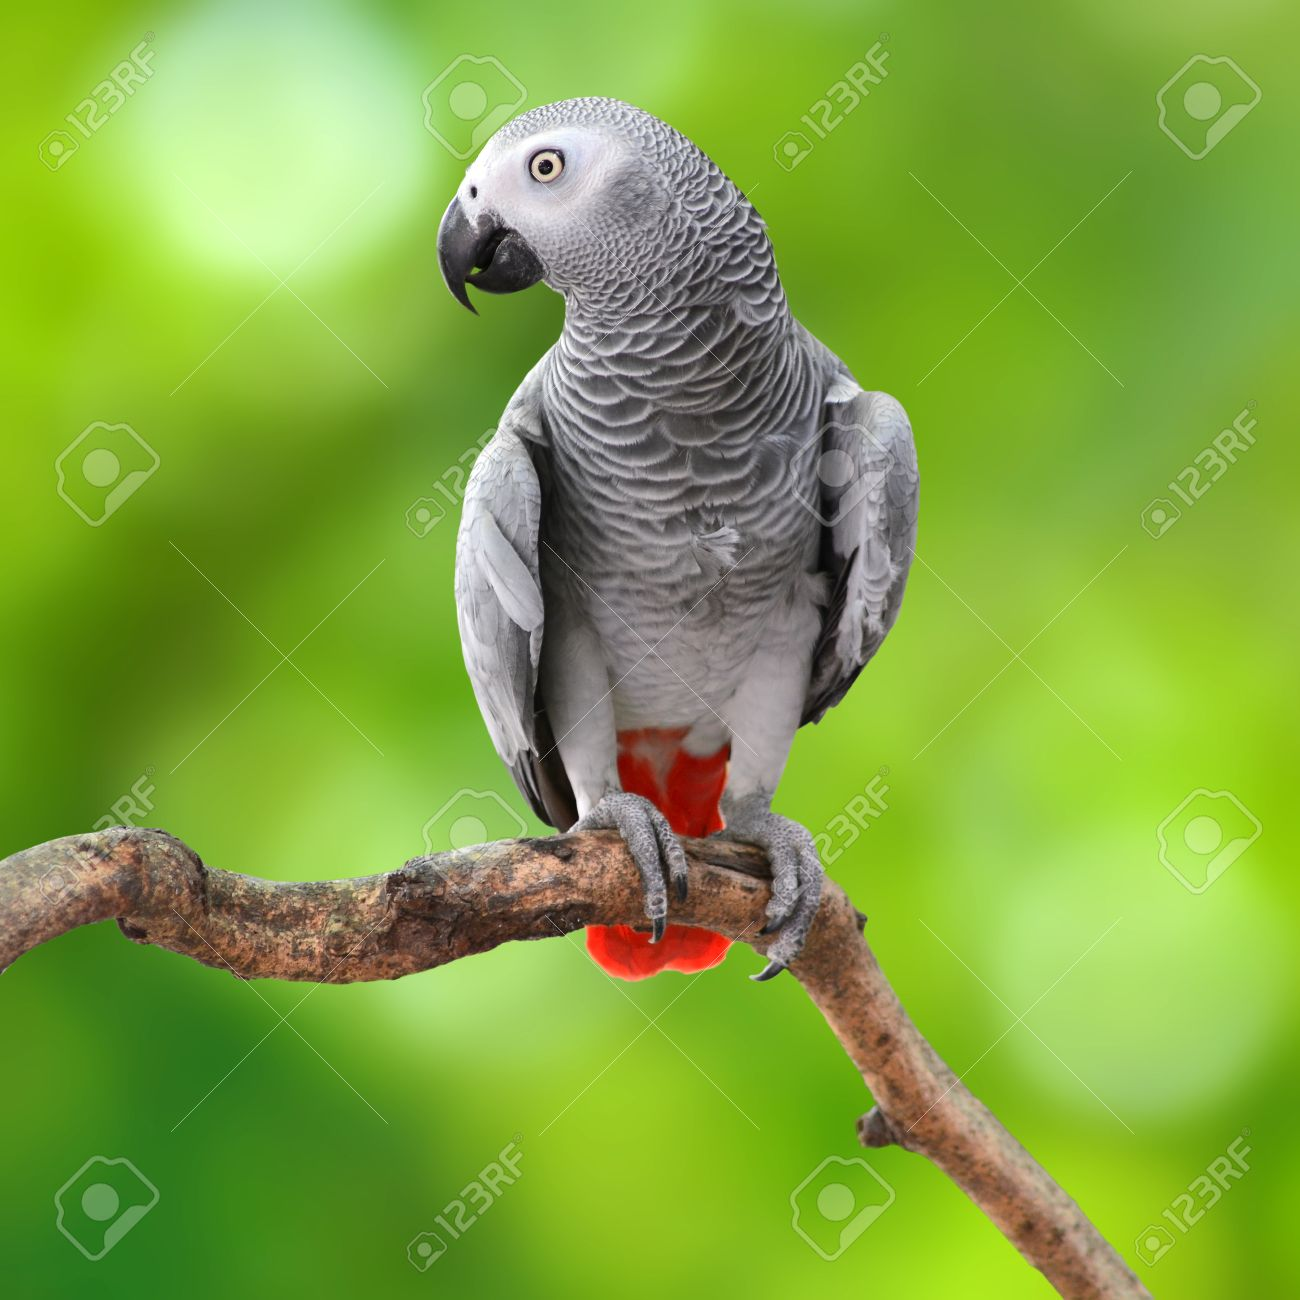 Beautiful grey parrot, African Grey Parrot (Psittacus erithacus), standing on a branch, green background - 27836159